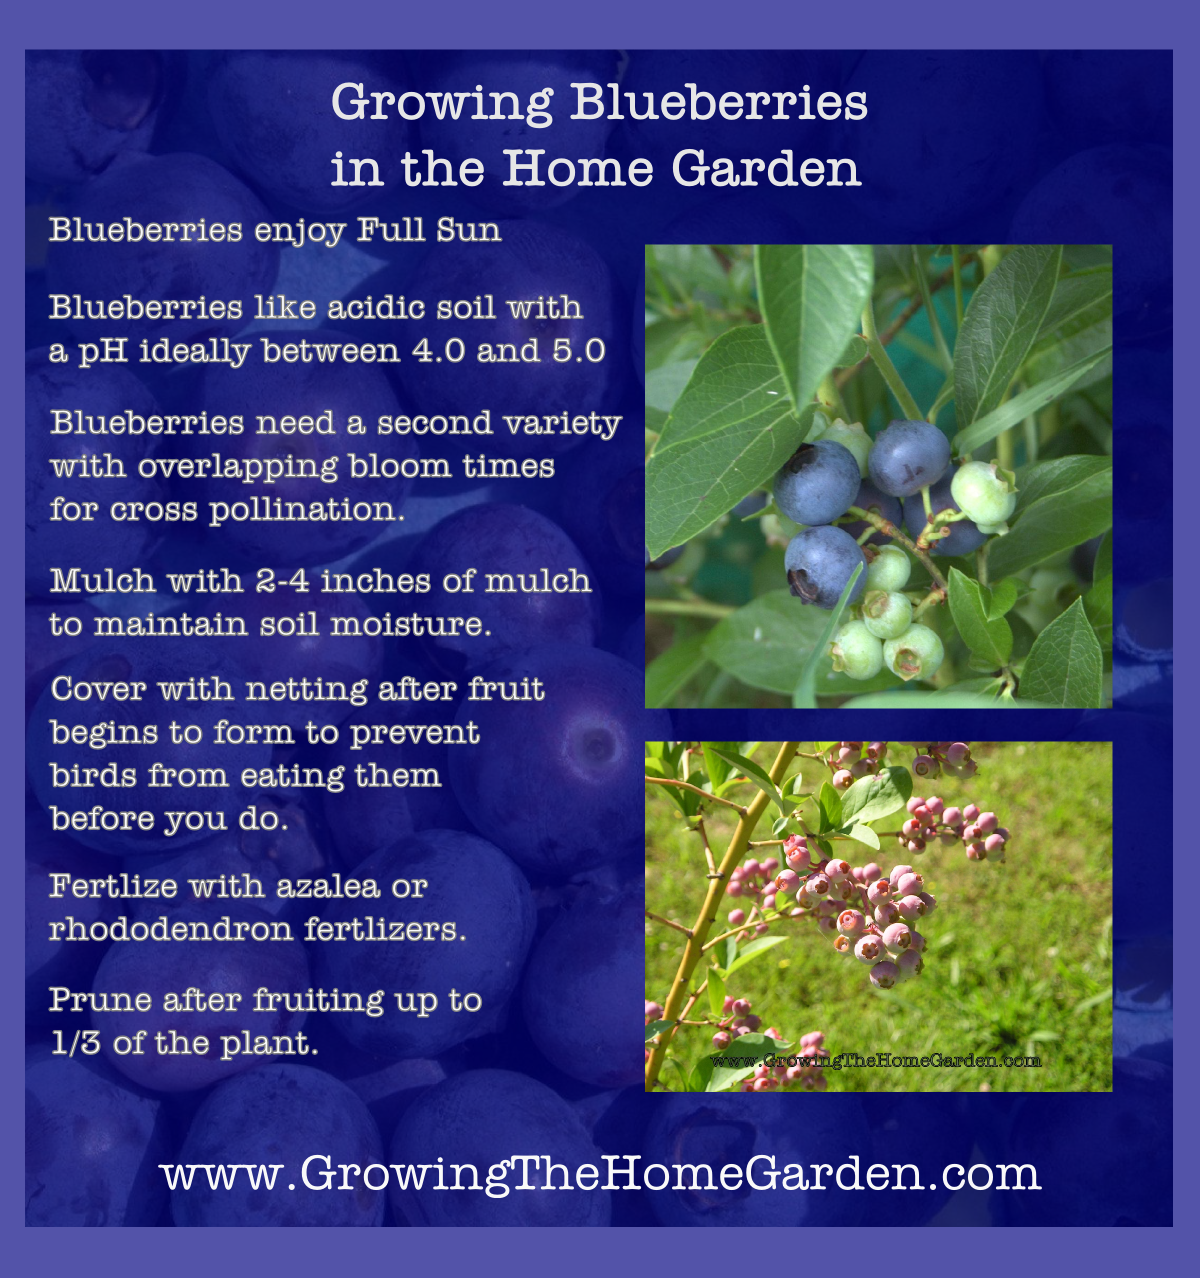 Growing Blueberries in the Home Garden